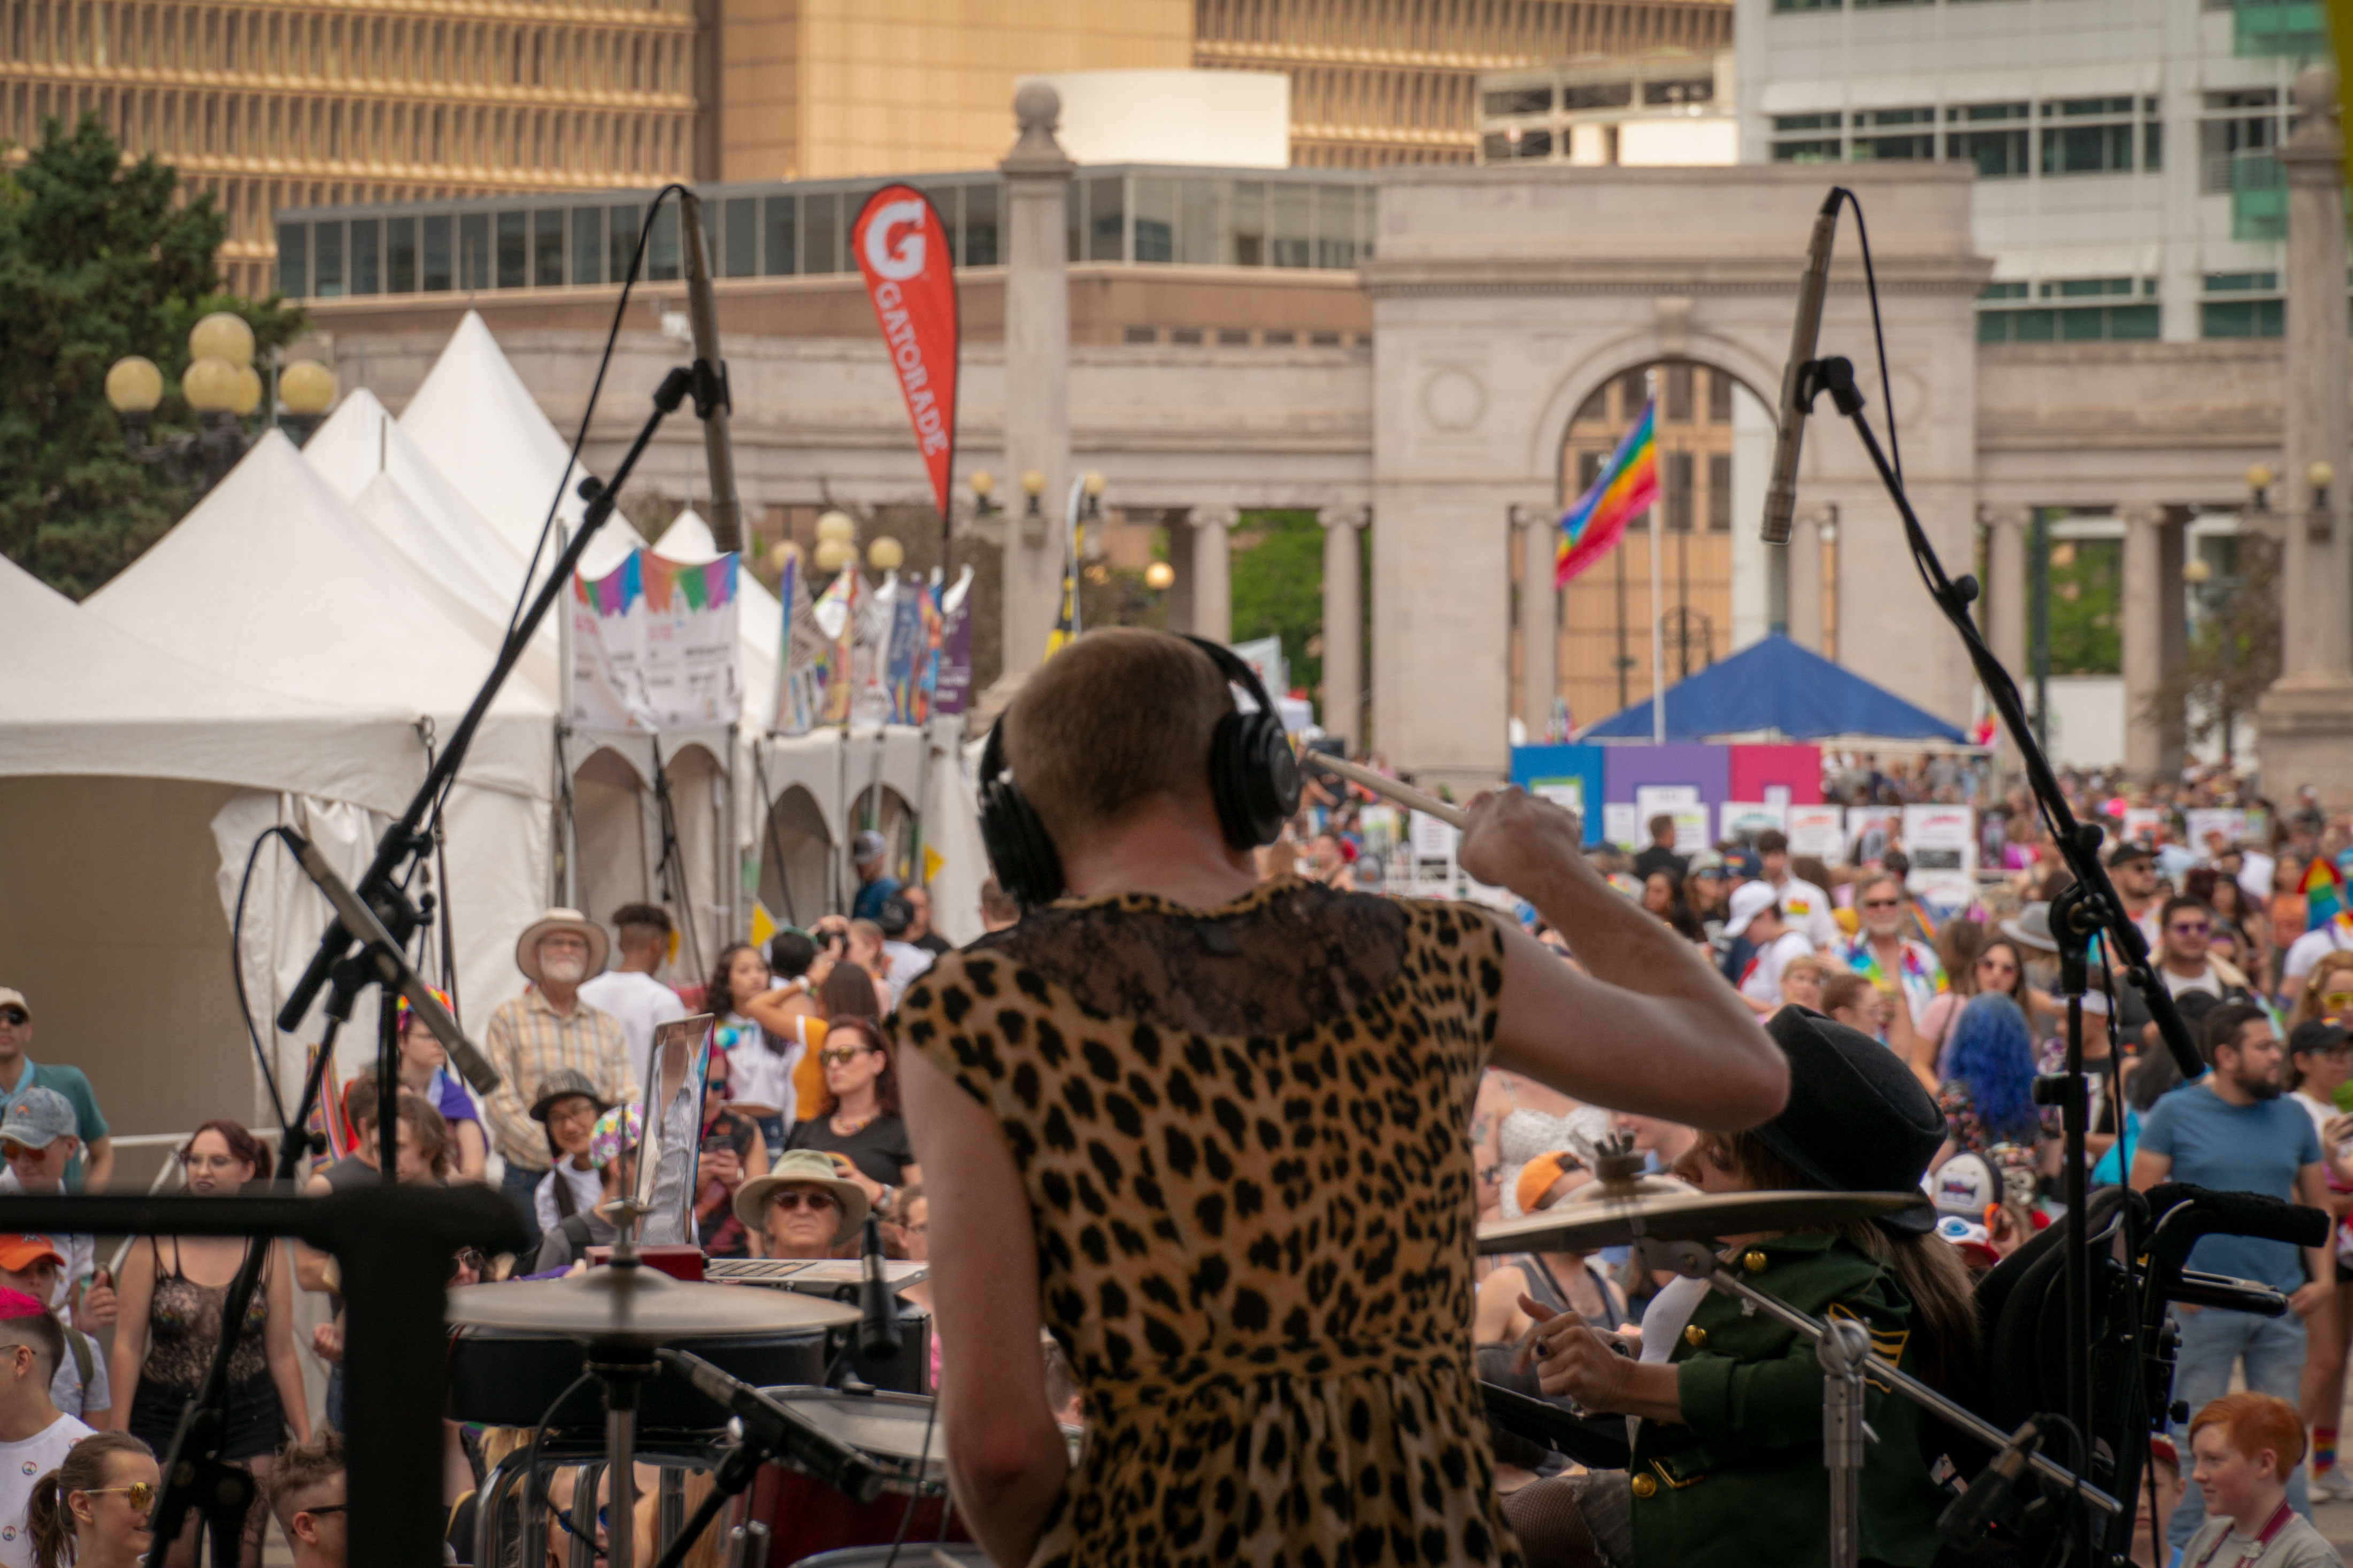 Denver band Wheelchair Sports Camp kicked off the entertainment for PrideFest in Civic Center Park on June 15, 2019.